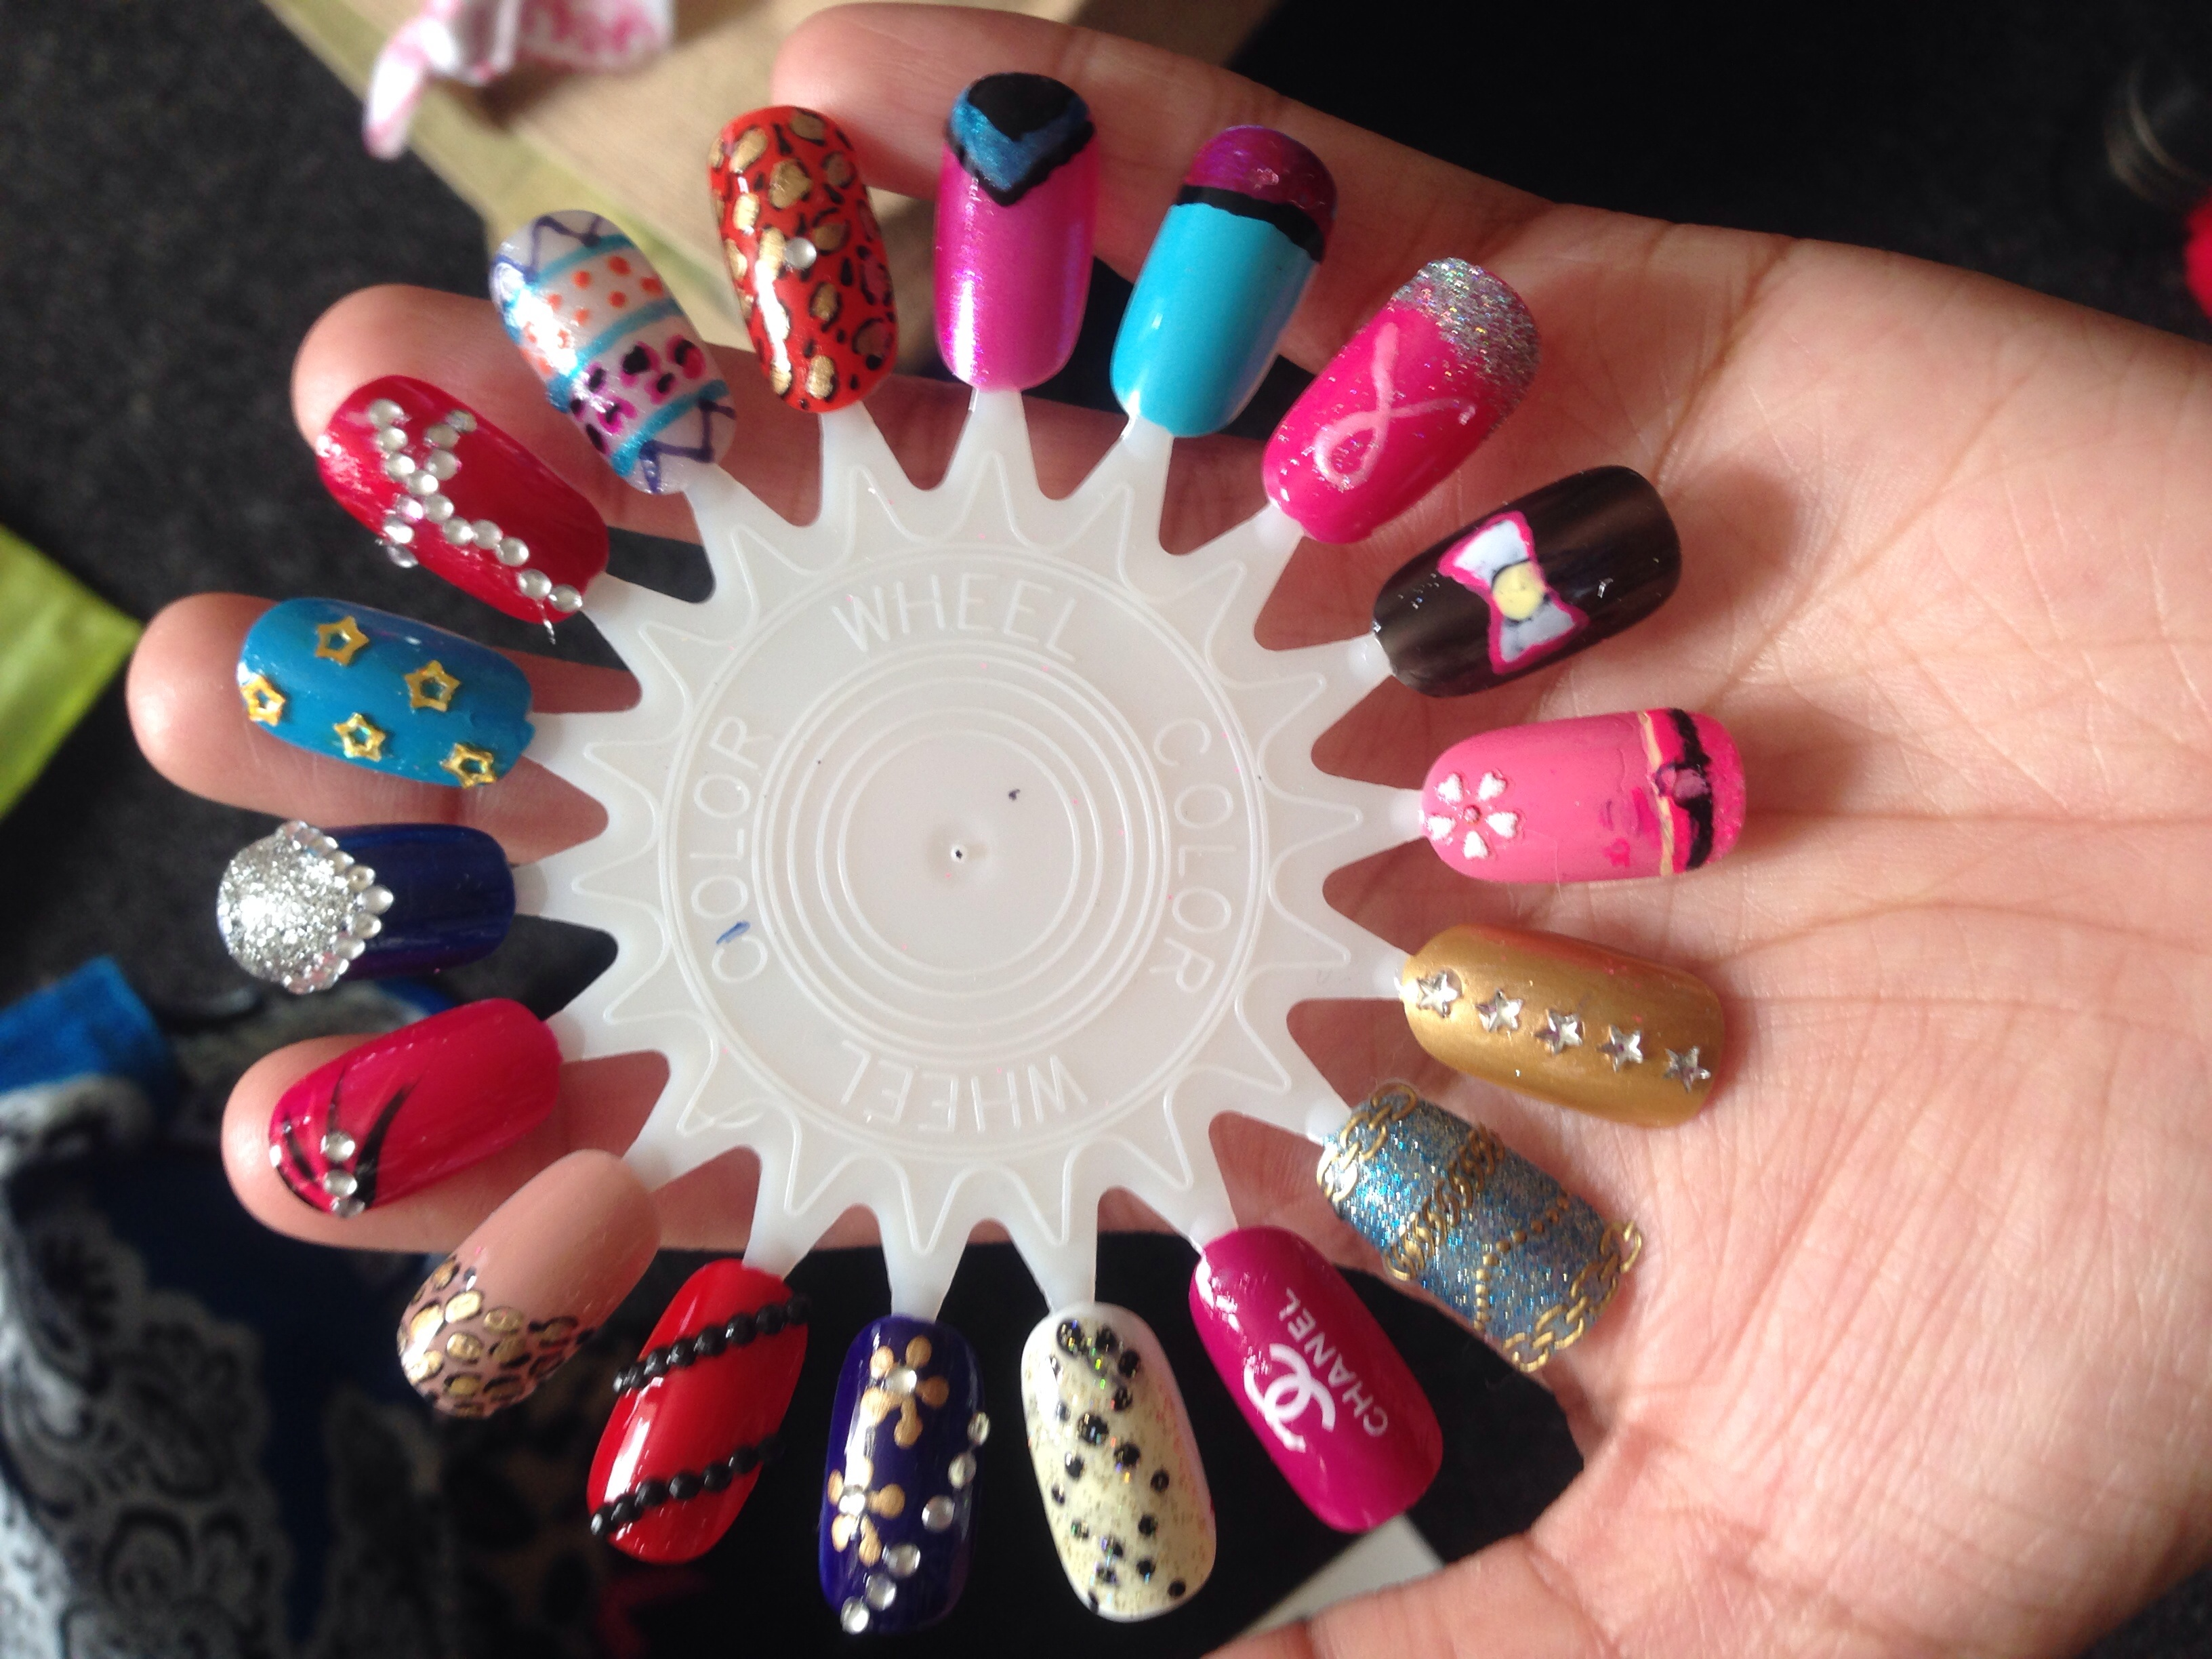 nail designs nail art customised false nails prettypunkycosmetics online store powered by. Black Bedroom Furniture Sets. Home Design Ideas